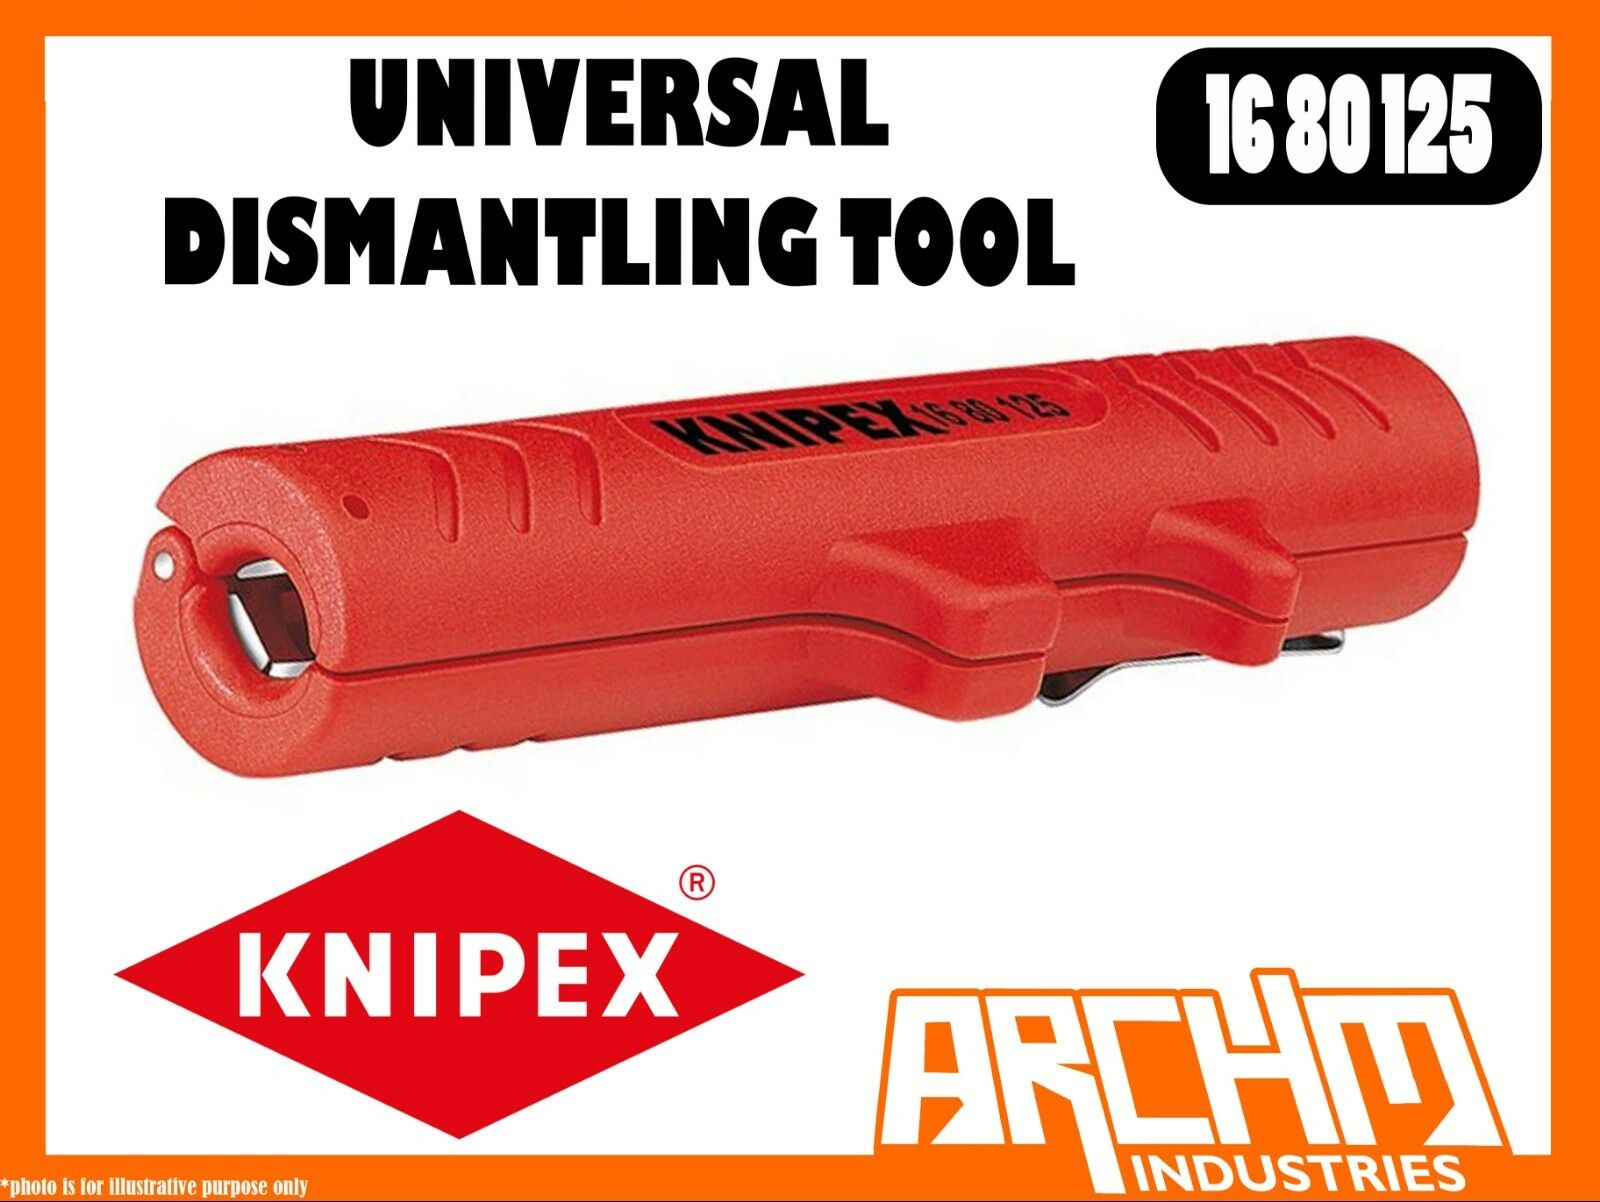 KNIPEX 1680125 -  UNIVERSAL DISMANTLING TOOL - 125MM STRIPPING CABLES